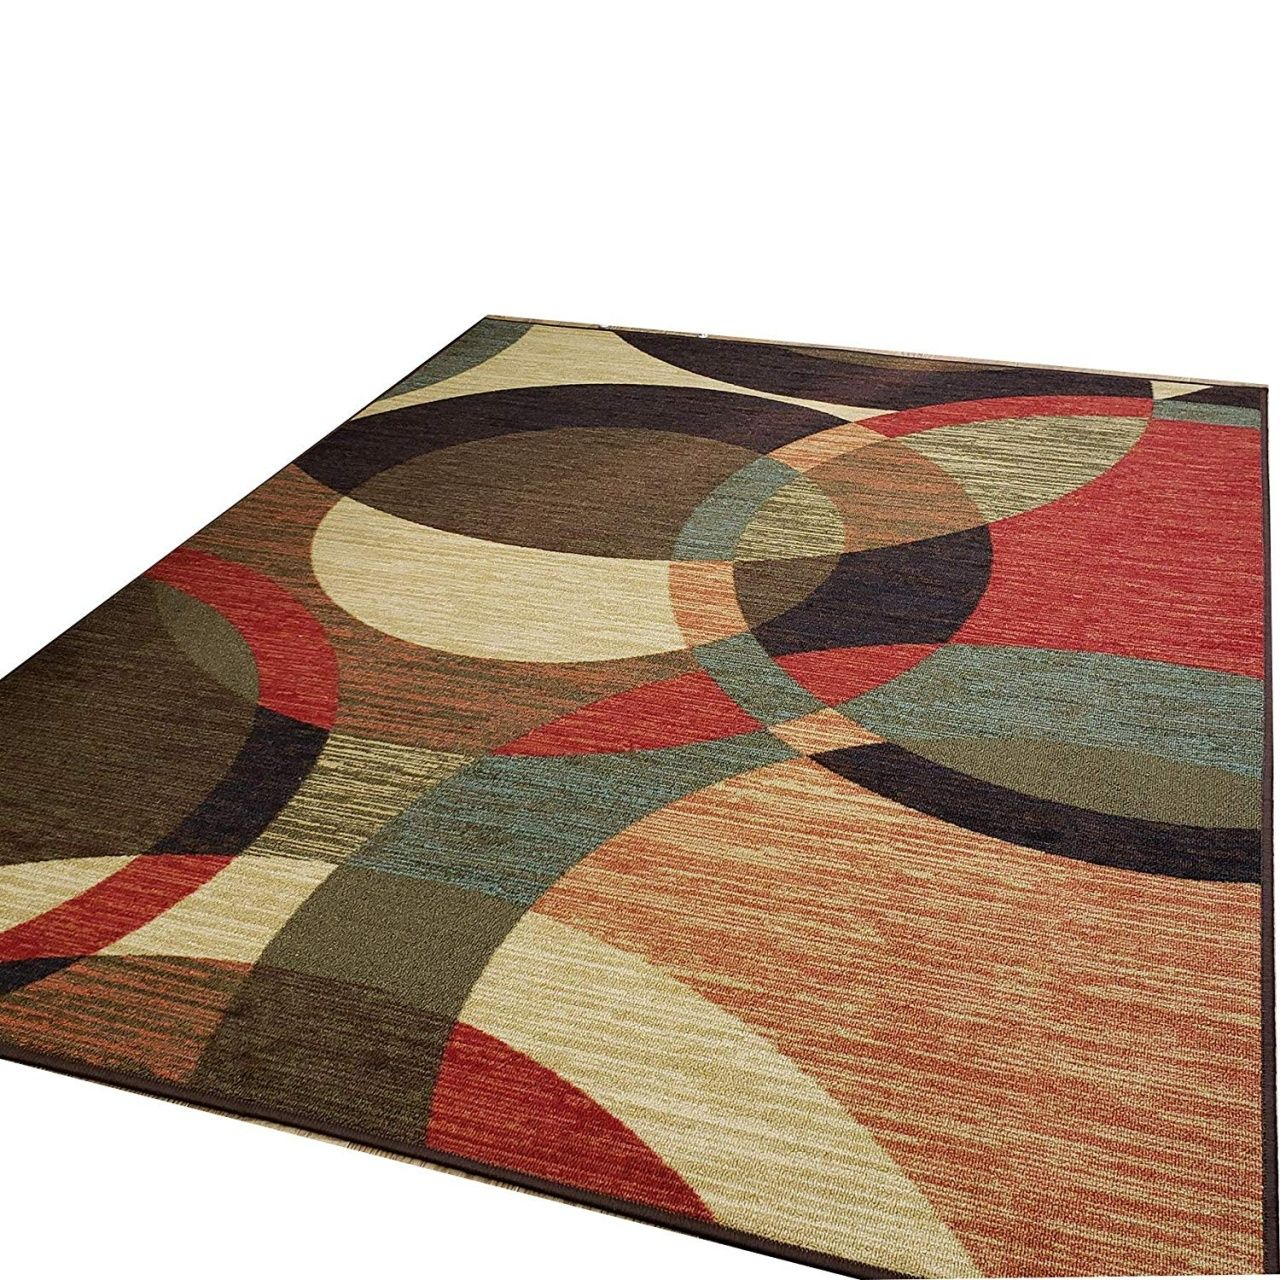 Bathroom Rugs Without Rubber Backing Bathroom Rugs Drop In